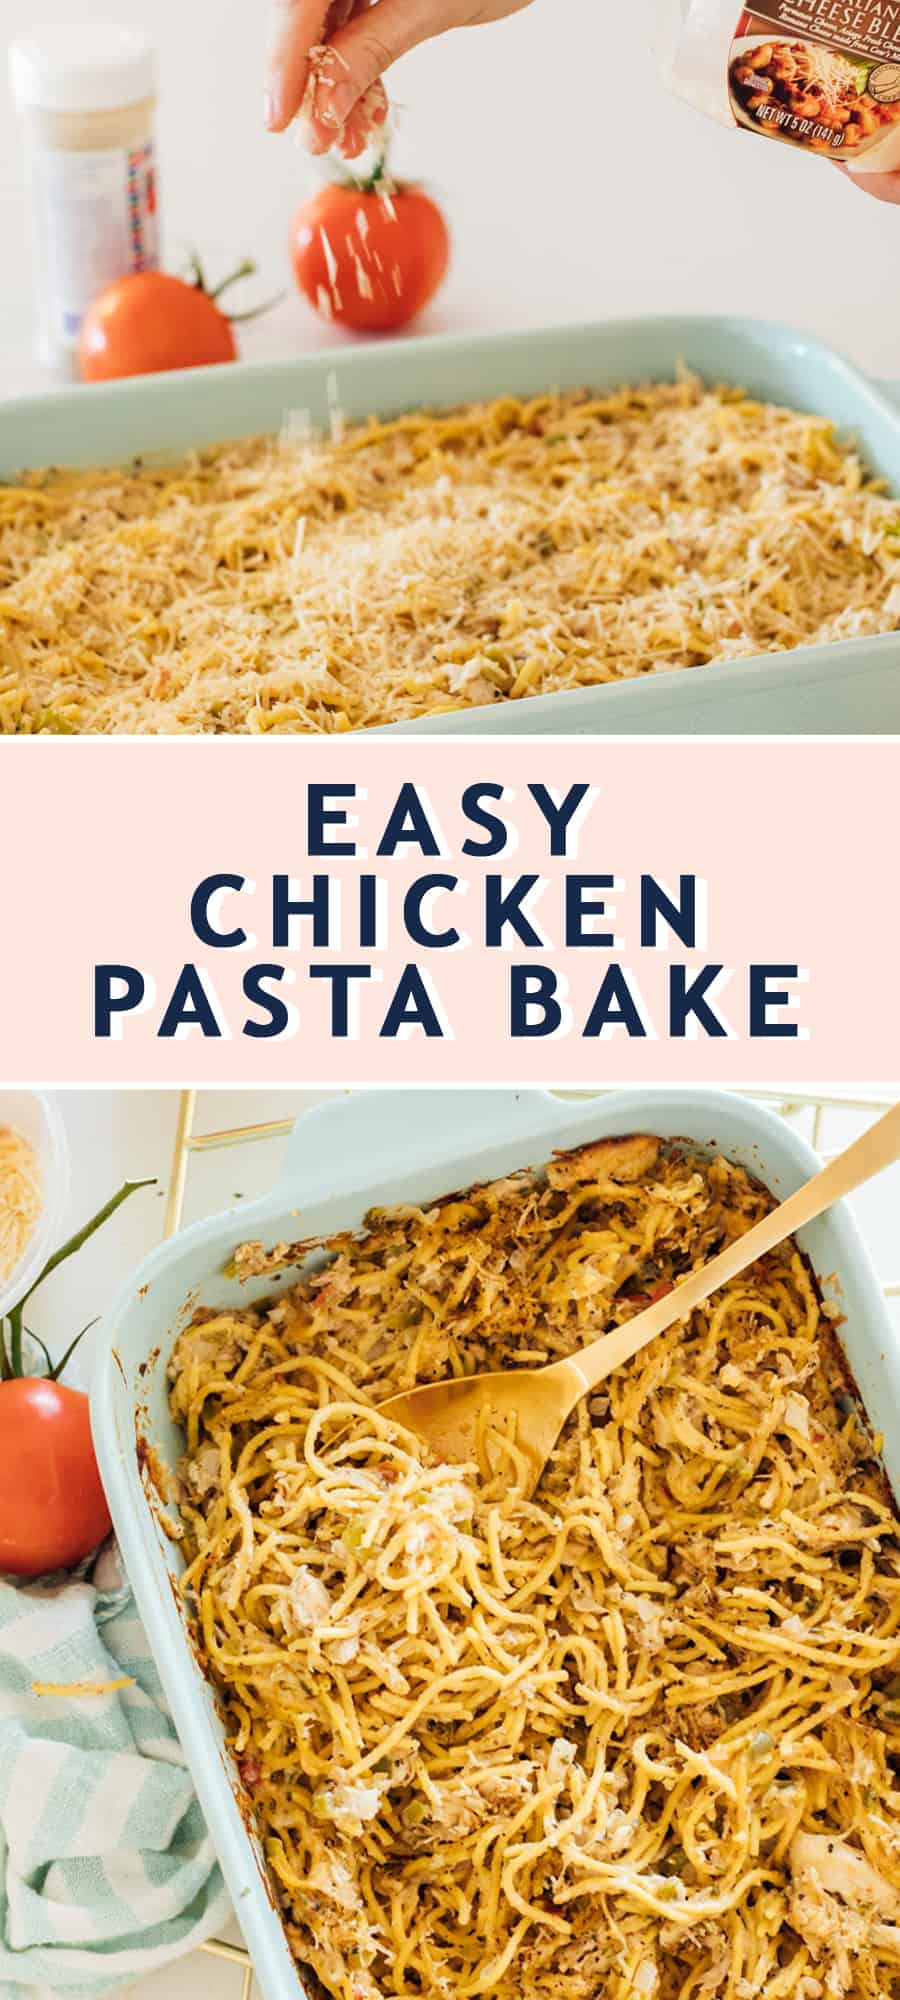 photo of the recipe card on how to make easy chicken pasta bake by top Houston lifestyle blogger Ashley Rose of Sugar & Cloth